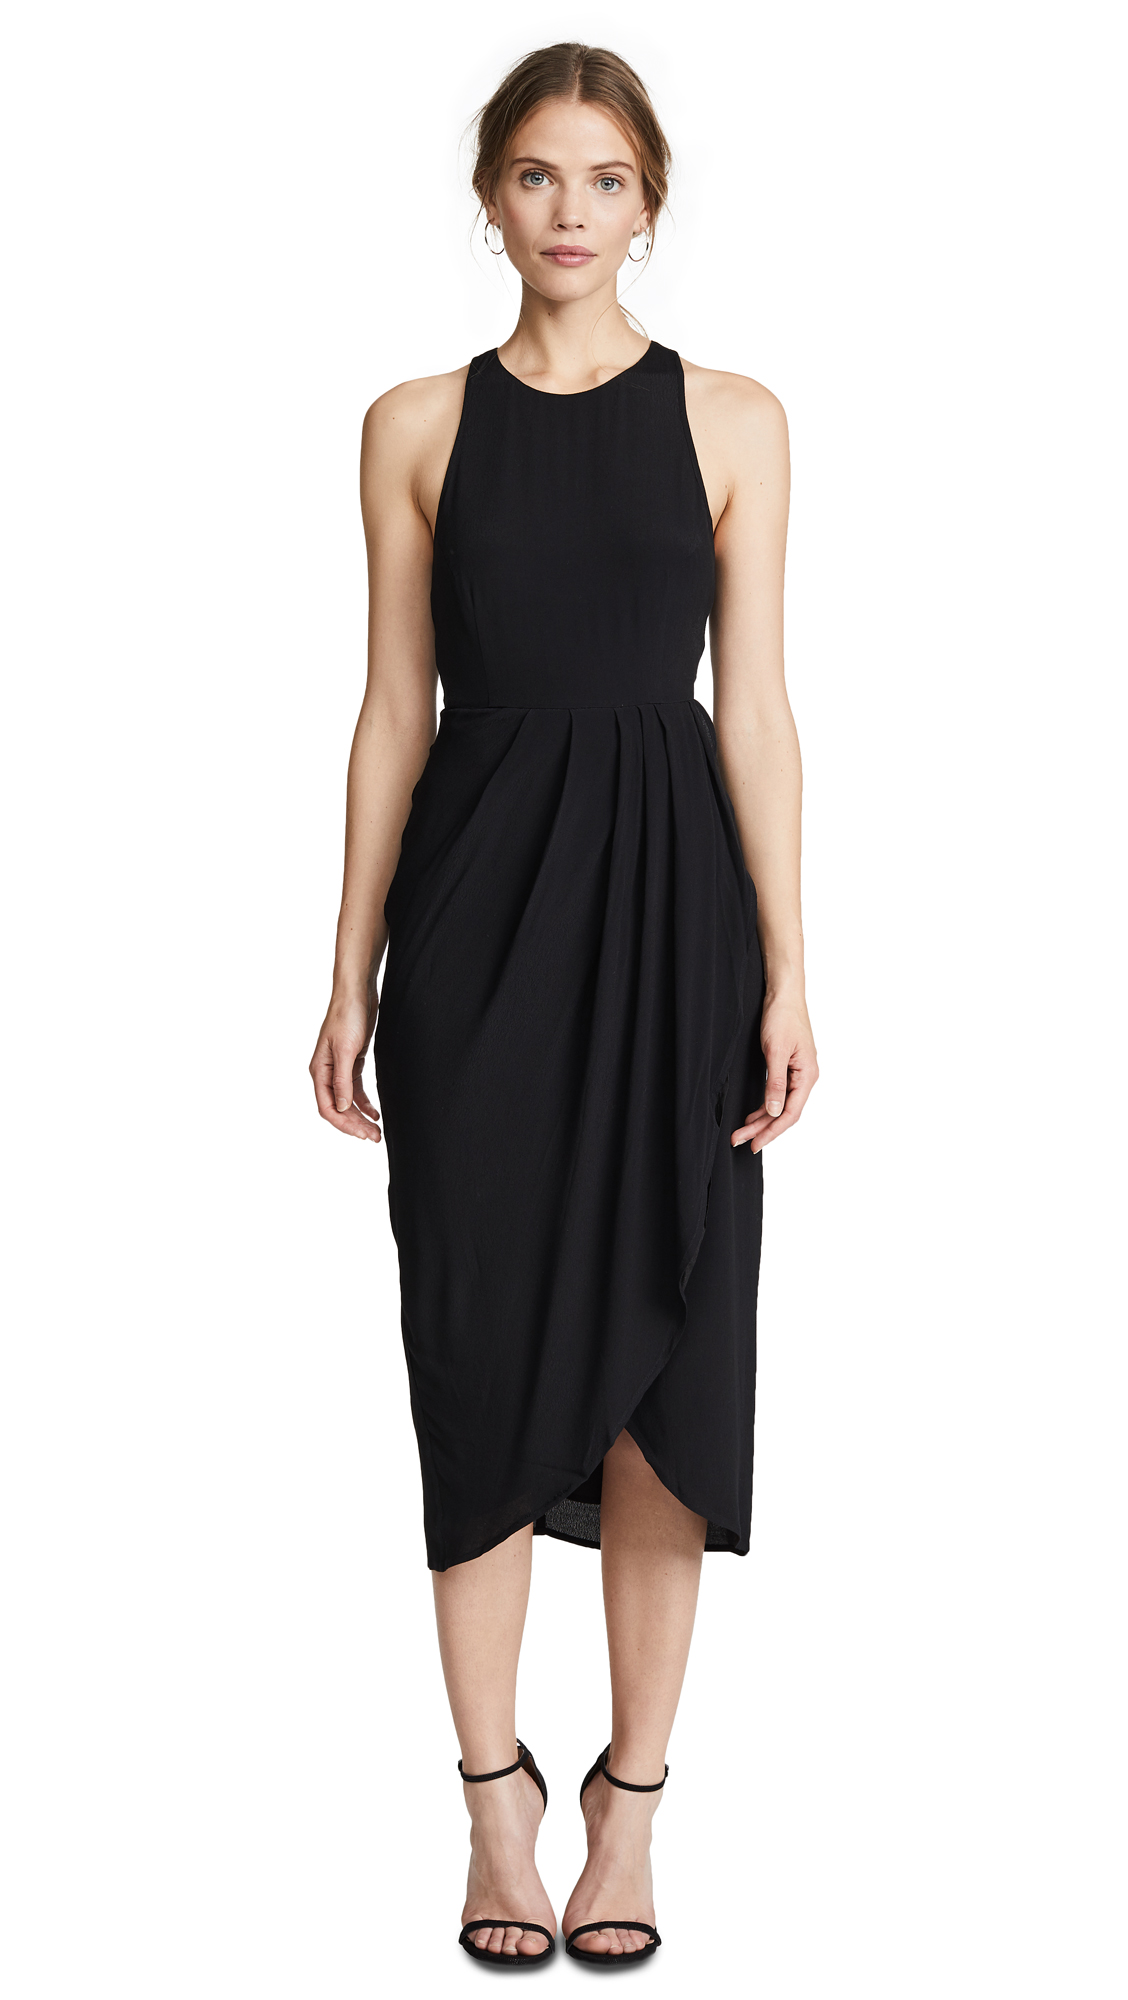 Yumi Kim So Social Dress - Black